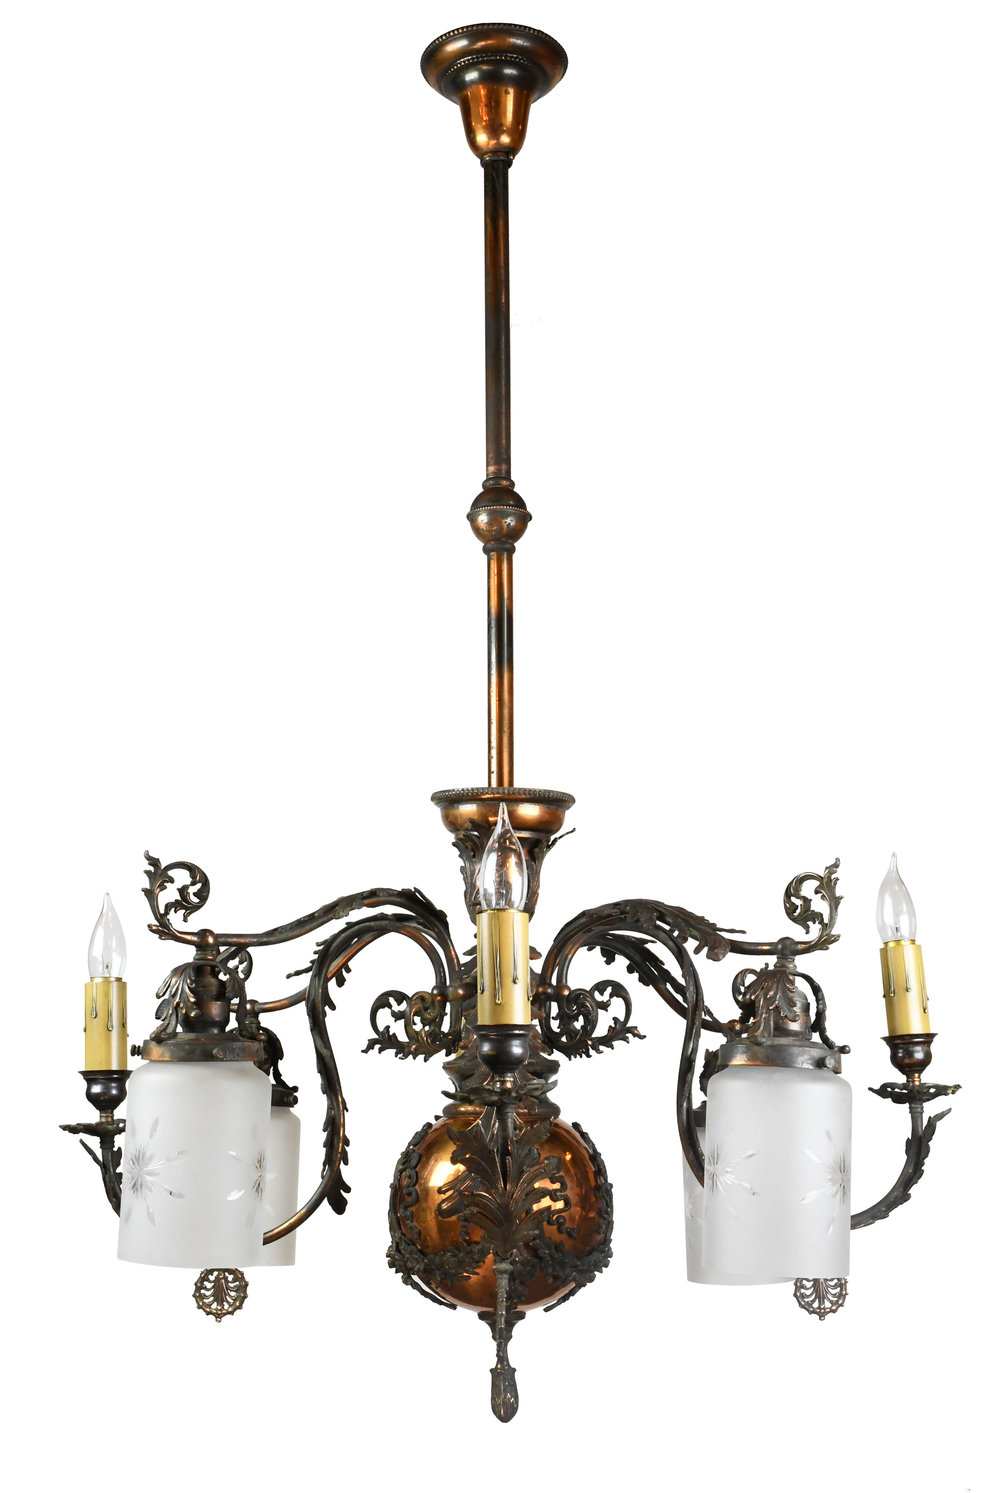 japanned finish gas-electric chandelier